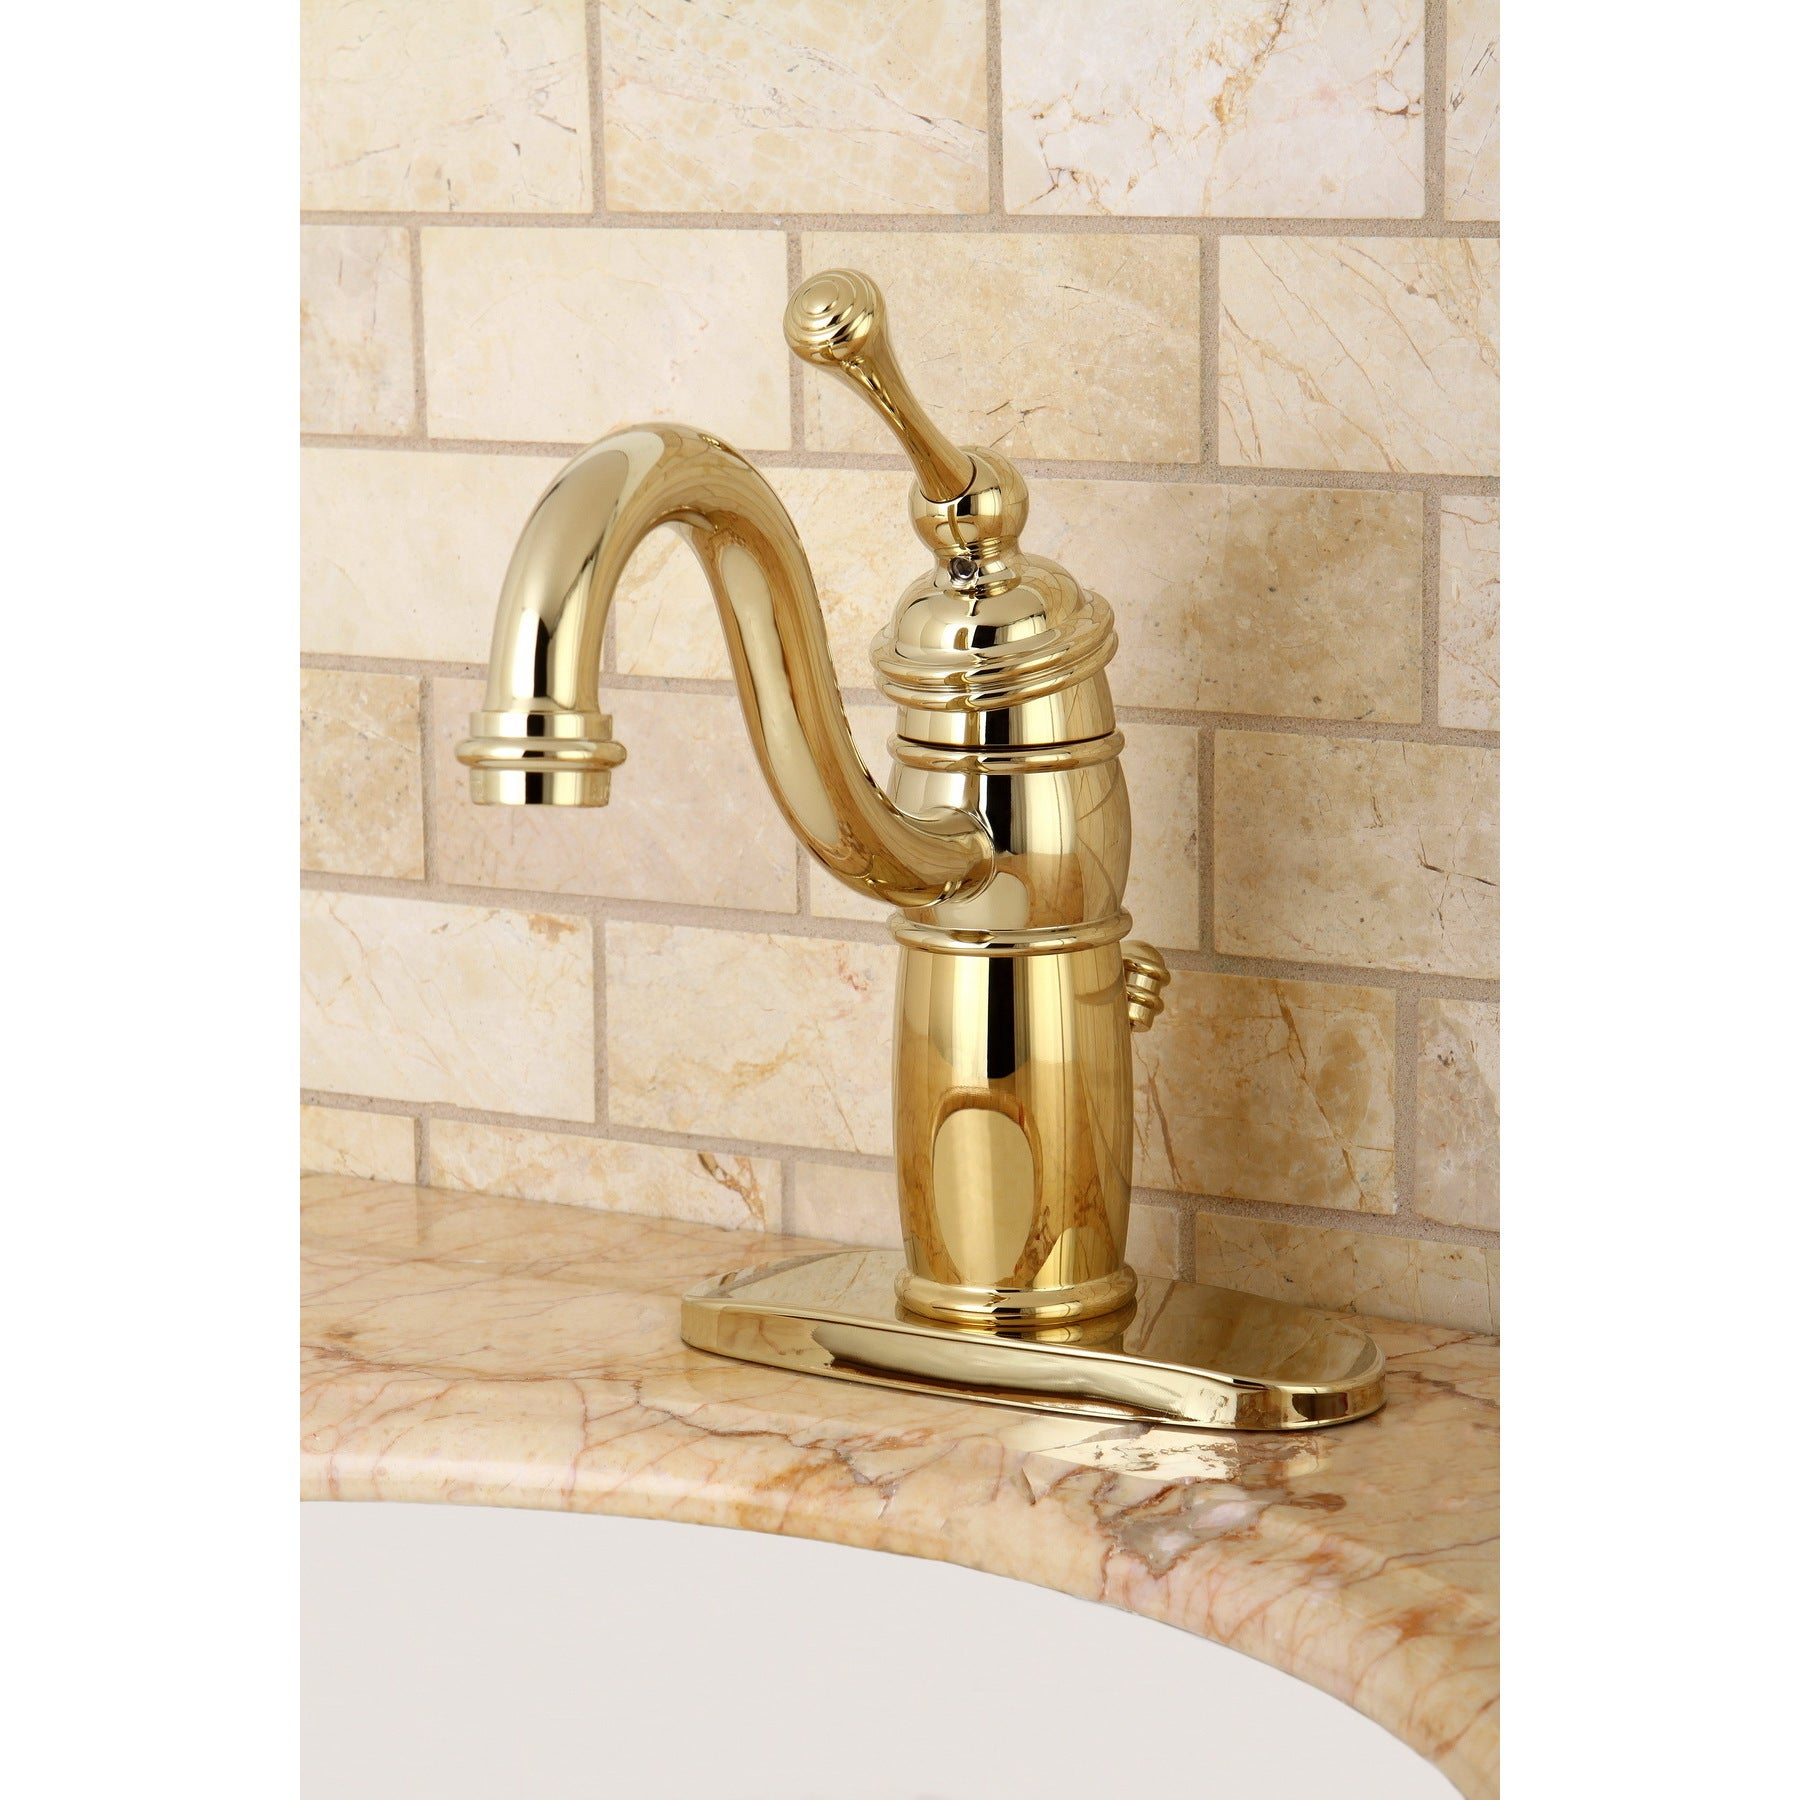 Image of: Shop Victorian Centerset Polished Brass Bathroom Faucet Brown Overstock 6143477